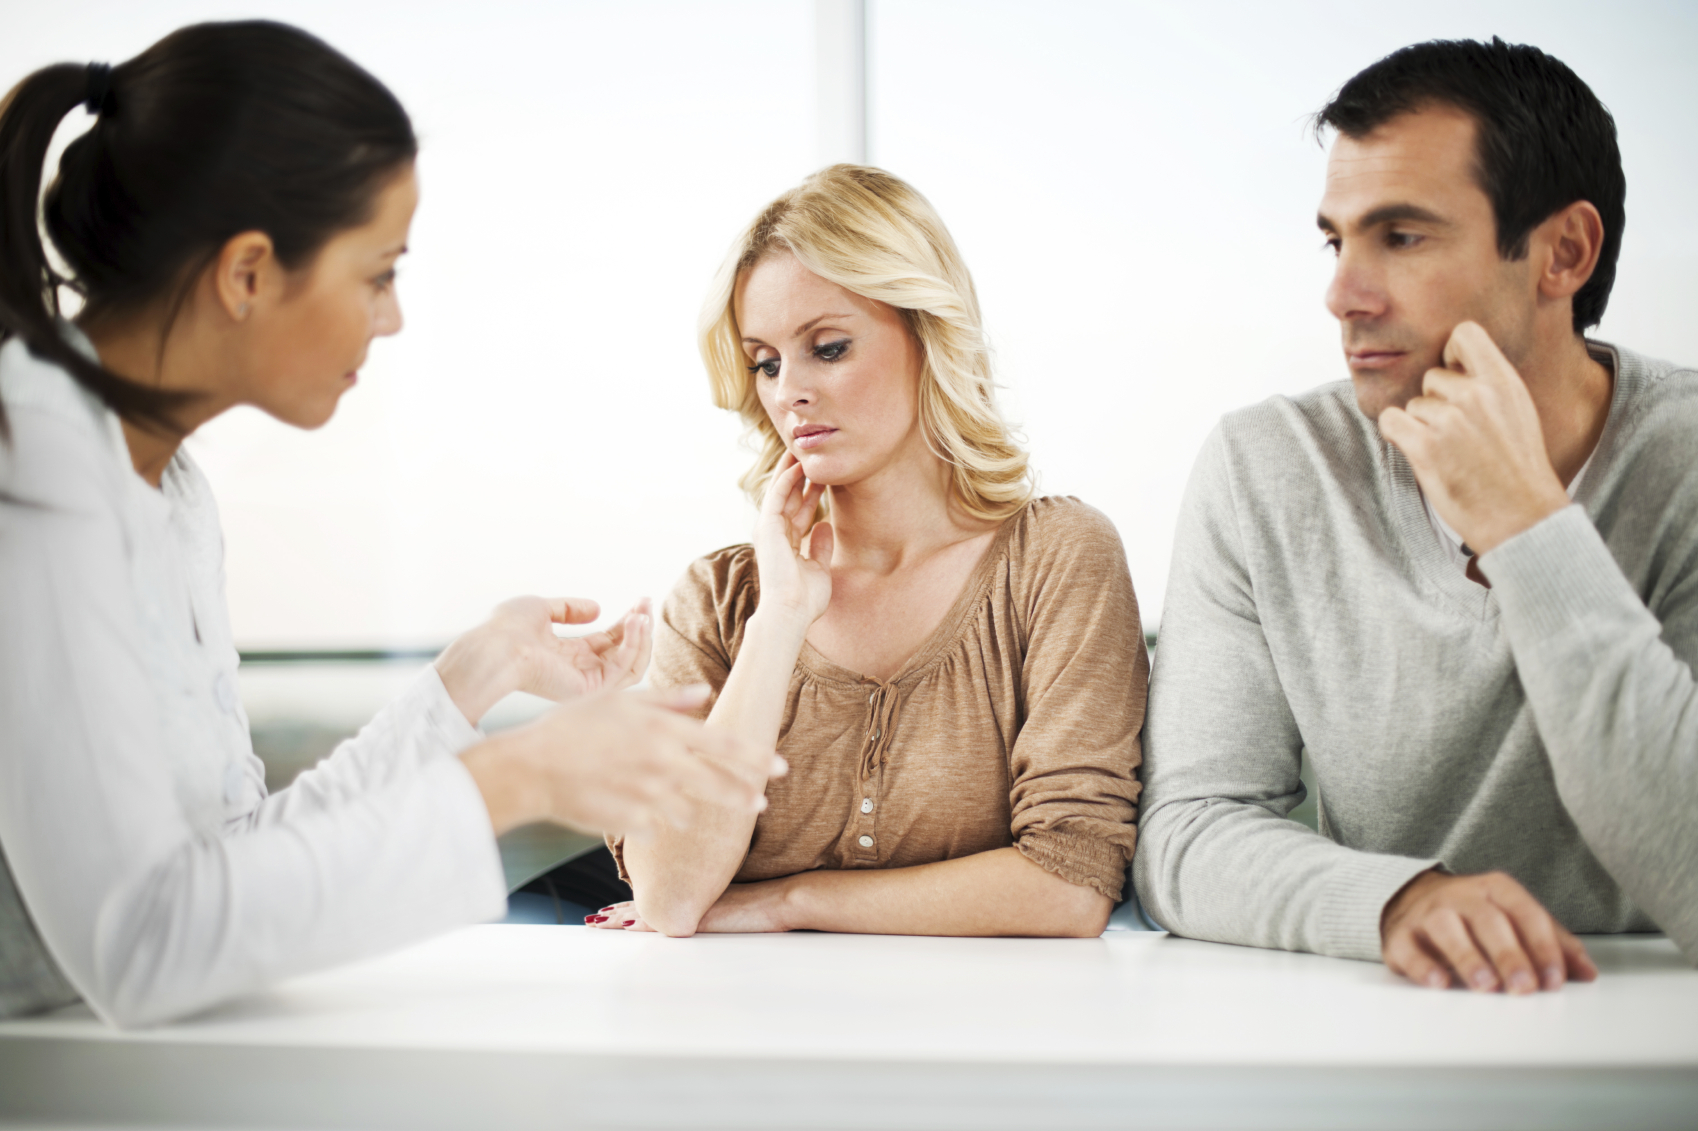 Restoring Broken Trust Through Relationship Counseling